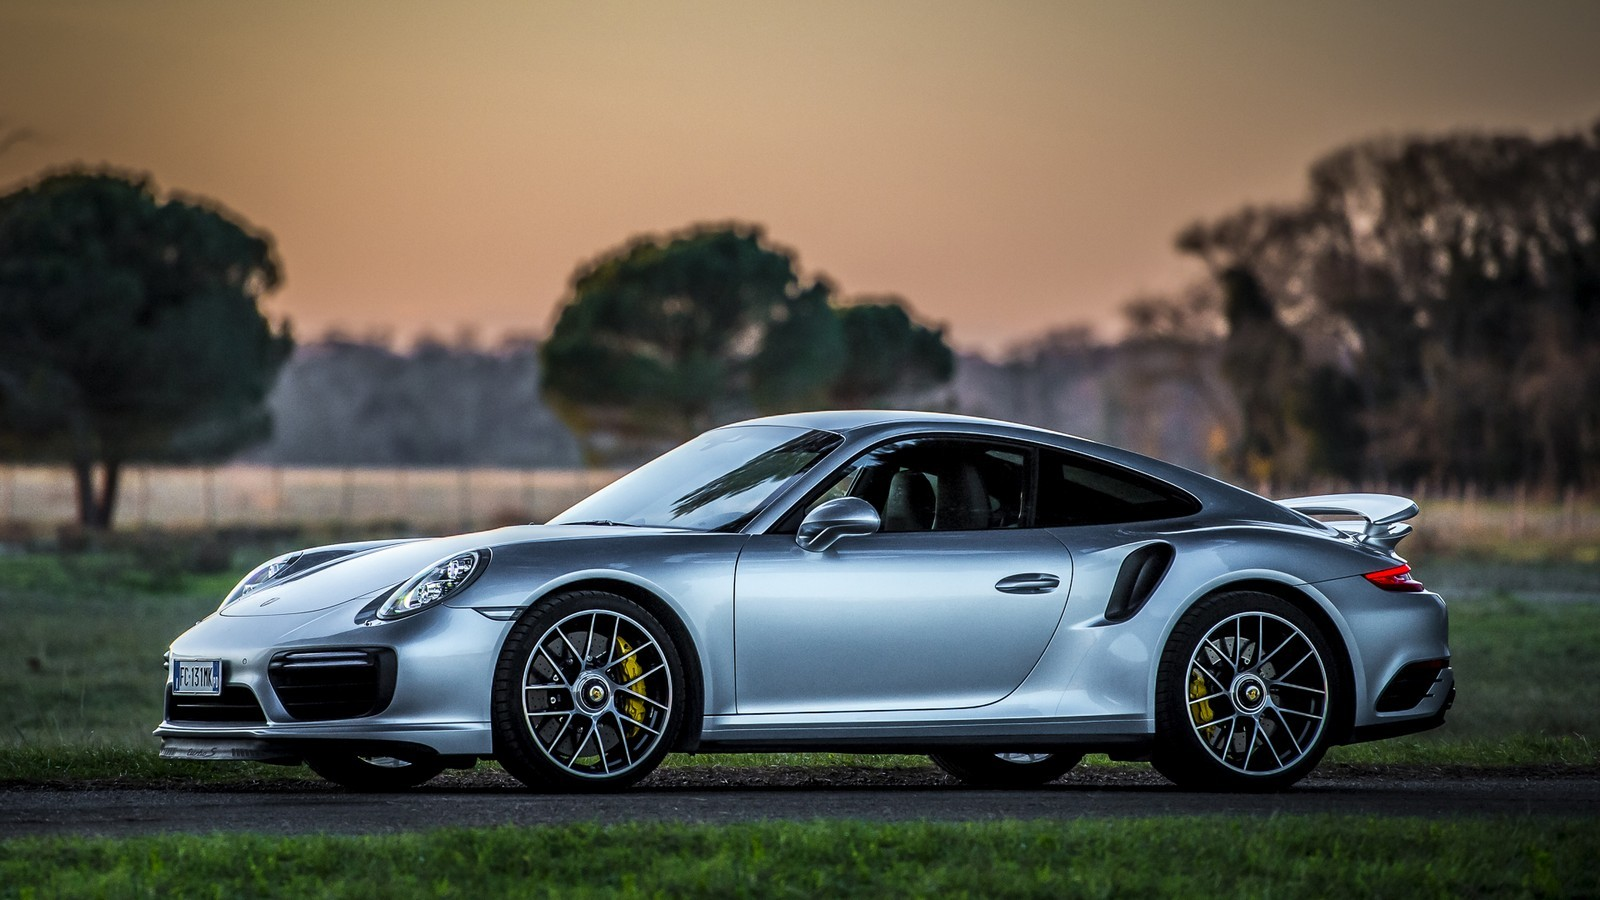 Porsche 911 Turbo S Coupe